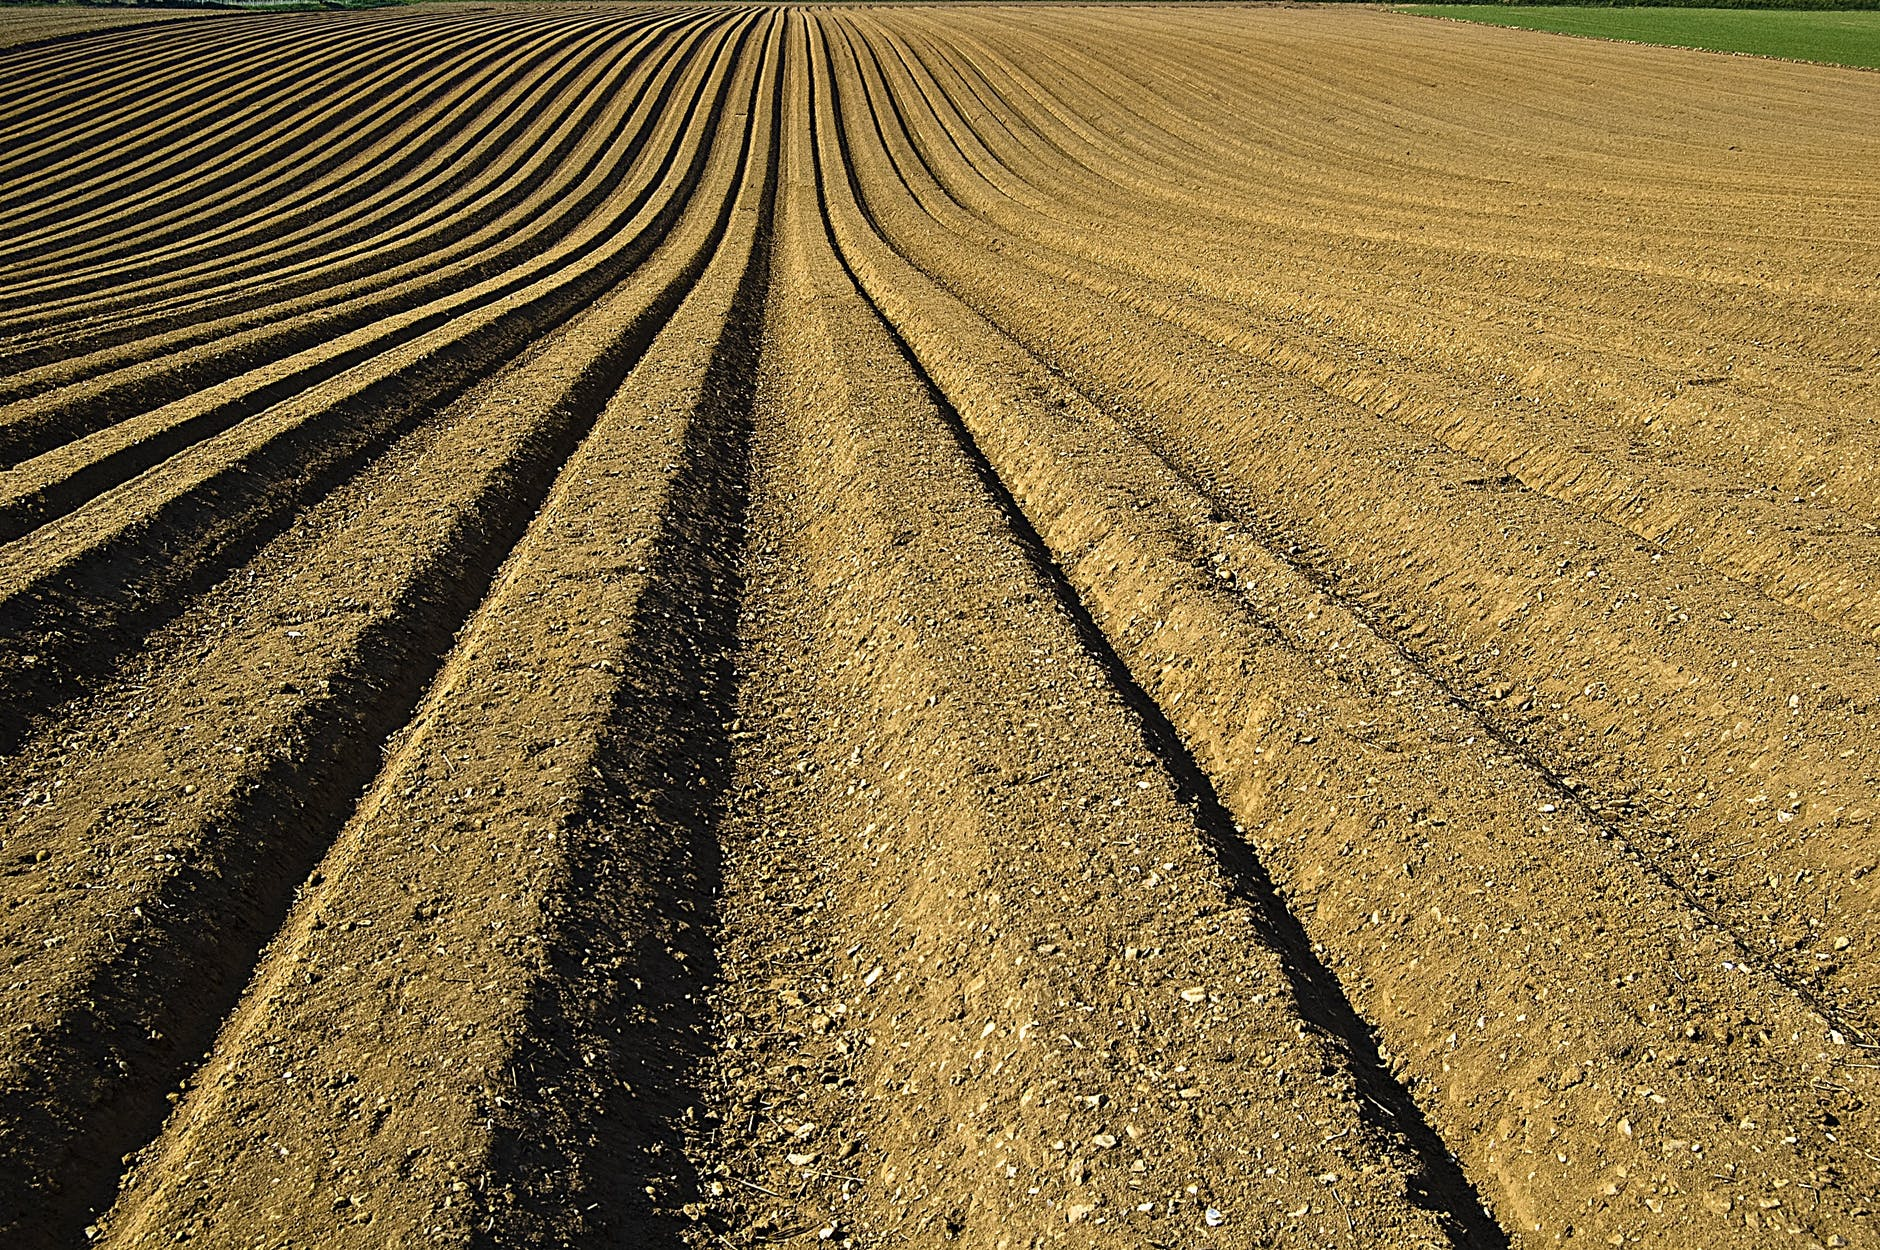 an analysis of the agriculture plowing up new soil